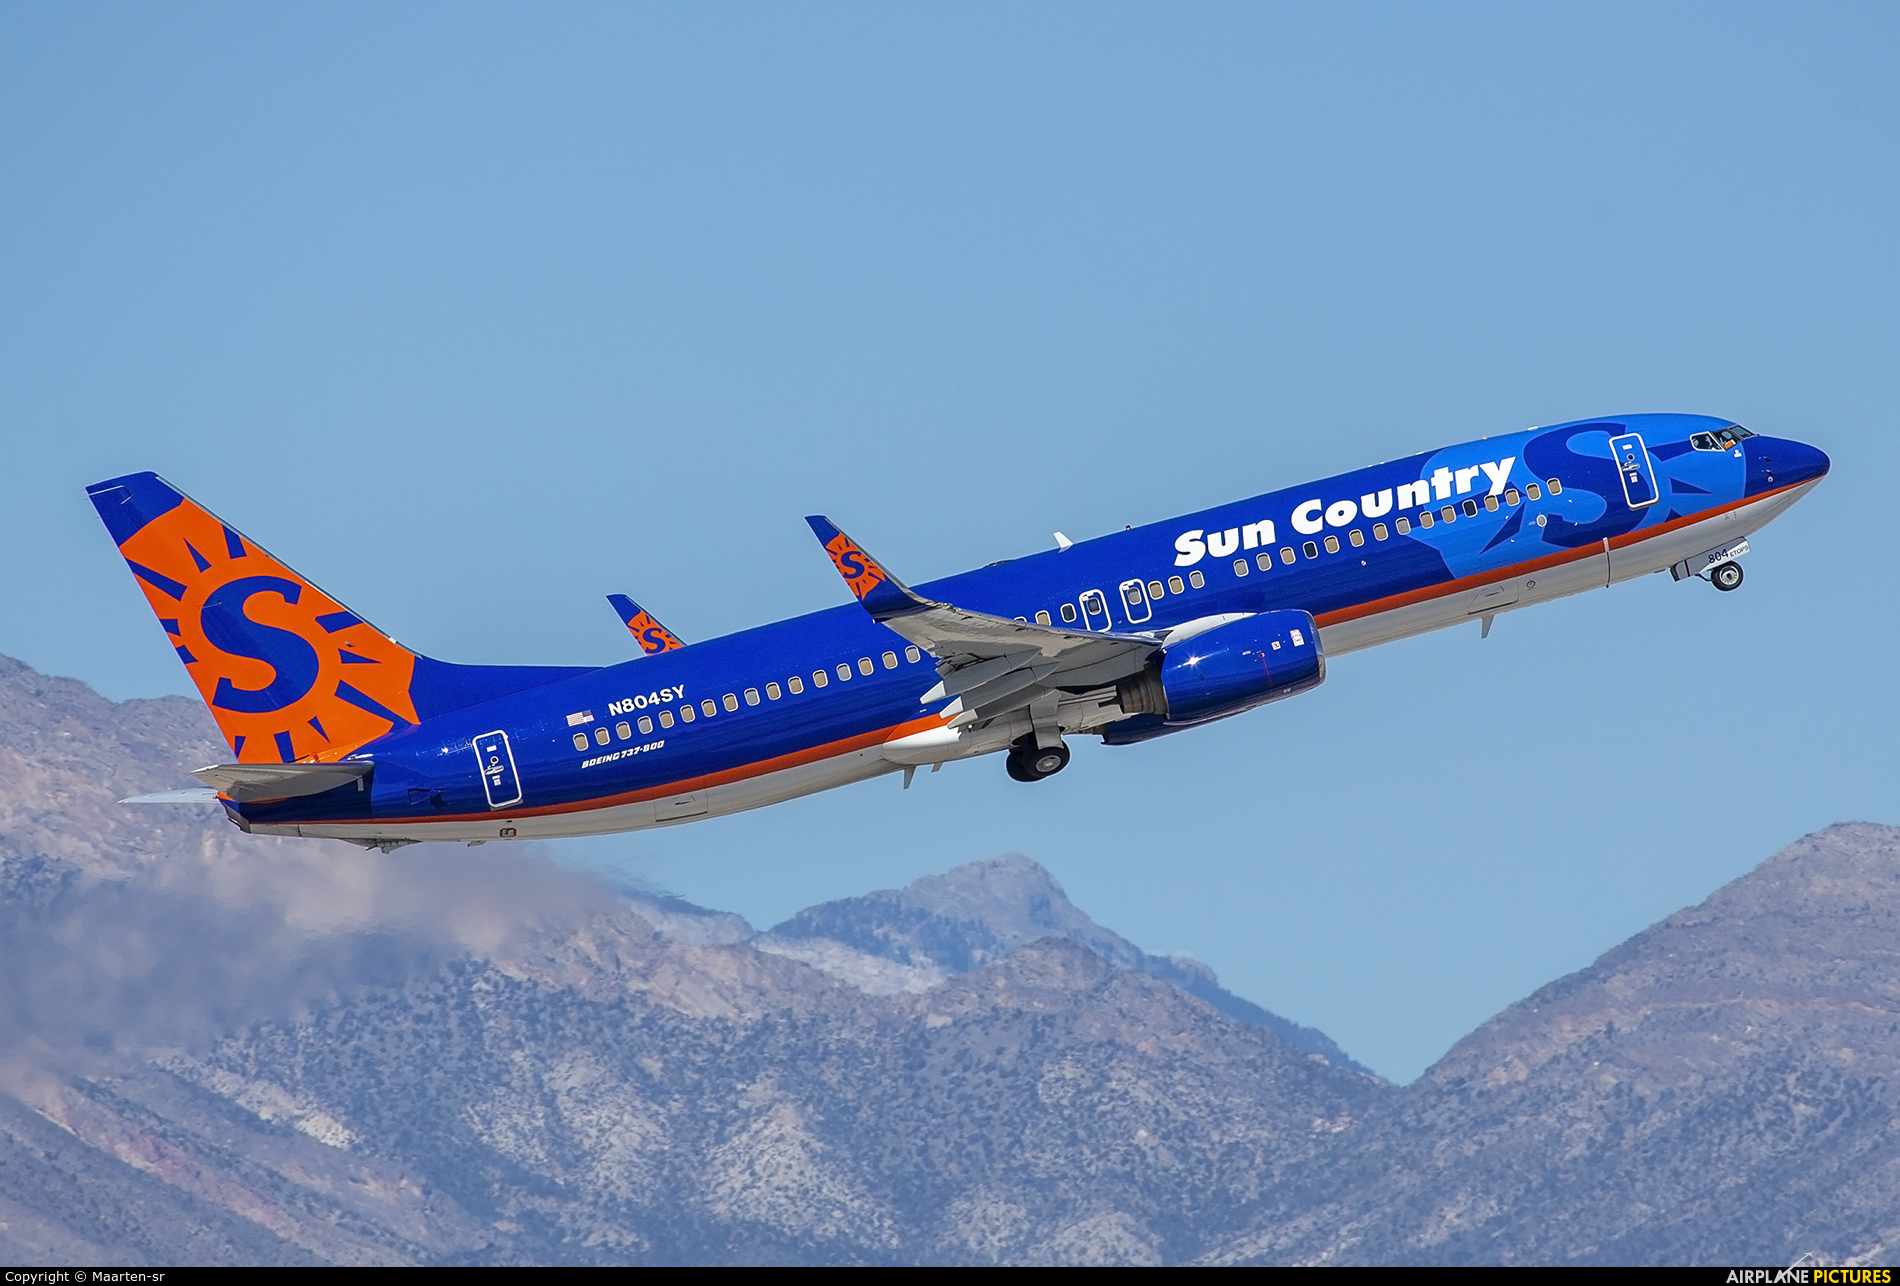 Sun Country Airlines N804SY aircraft at Las Vegas - McCarran Intl